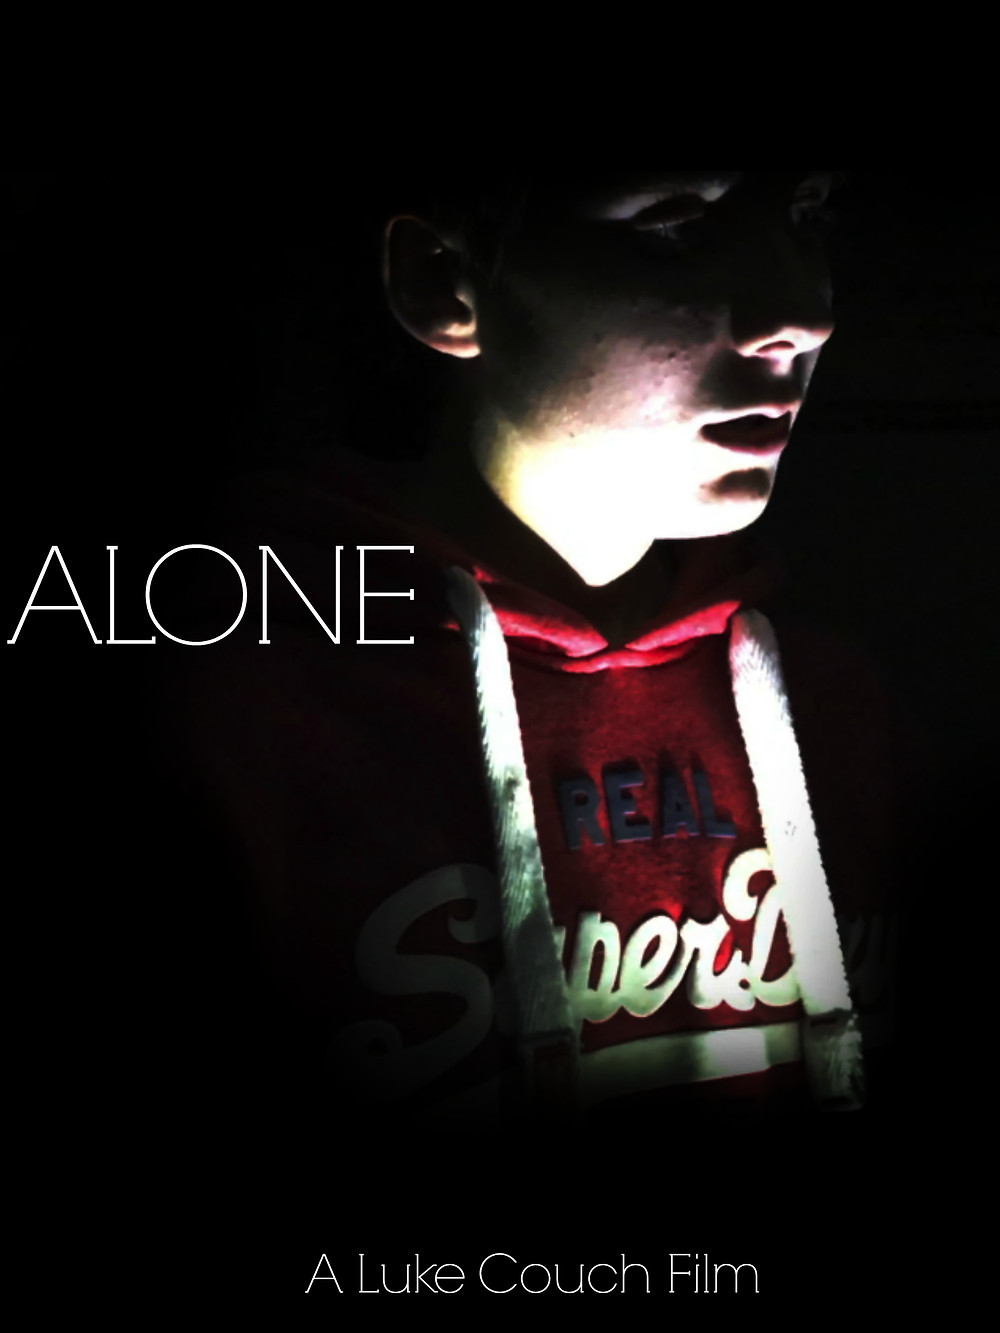 Alone short movie poster